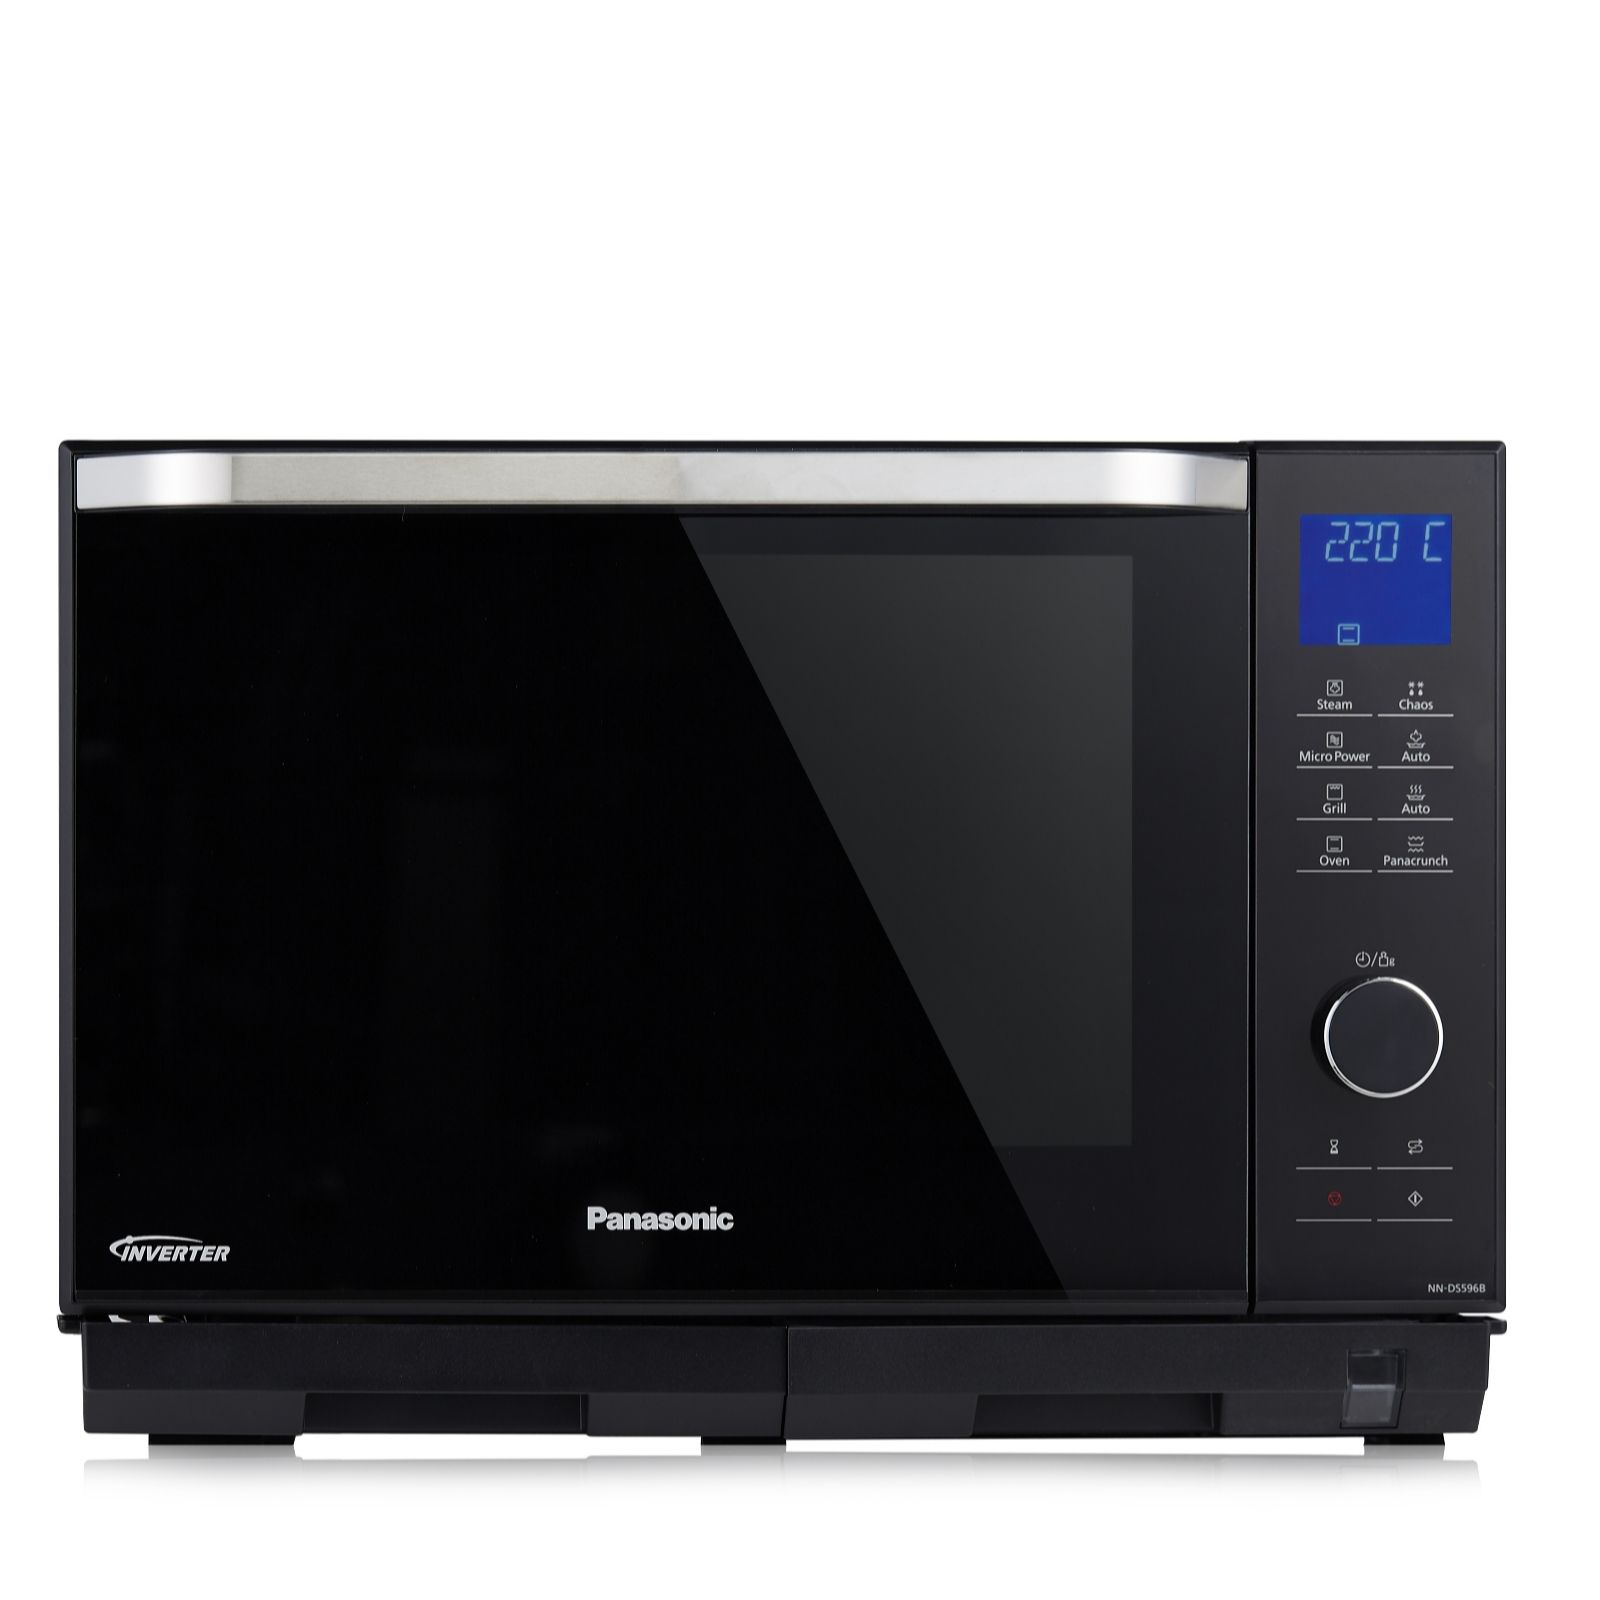 Panasonic Small Appliances Kitchen Home Kitchen QVC UK